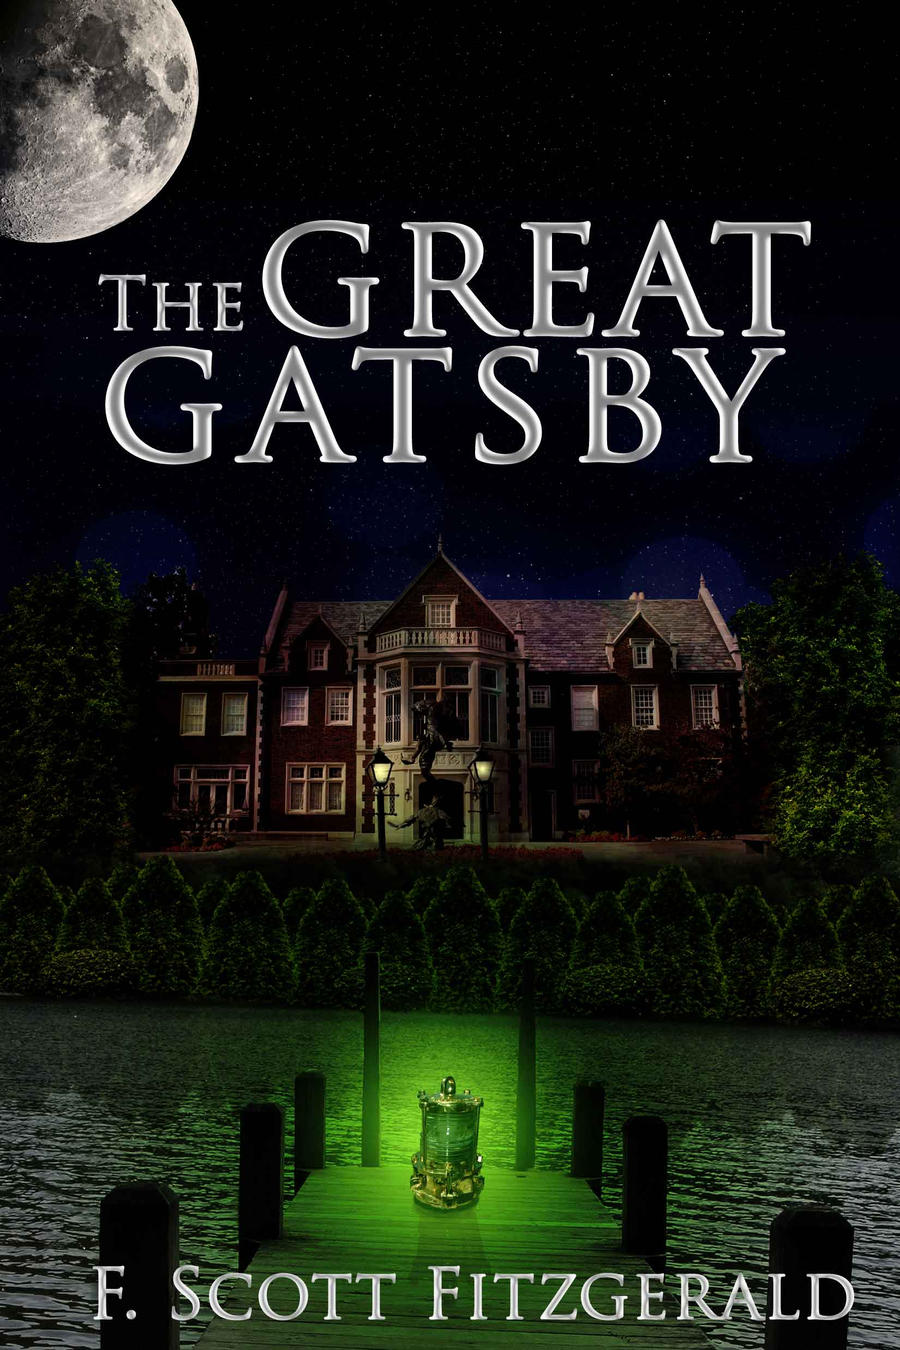 The Significance Of The Green Light As A Symbol In The Great Gatsby